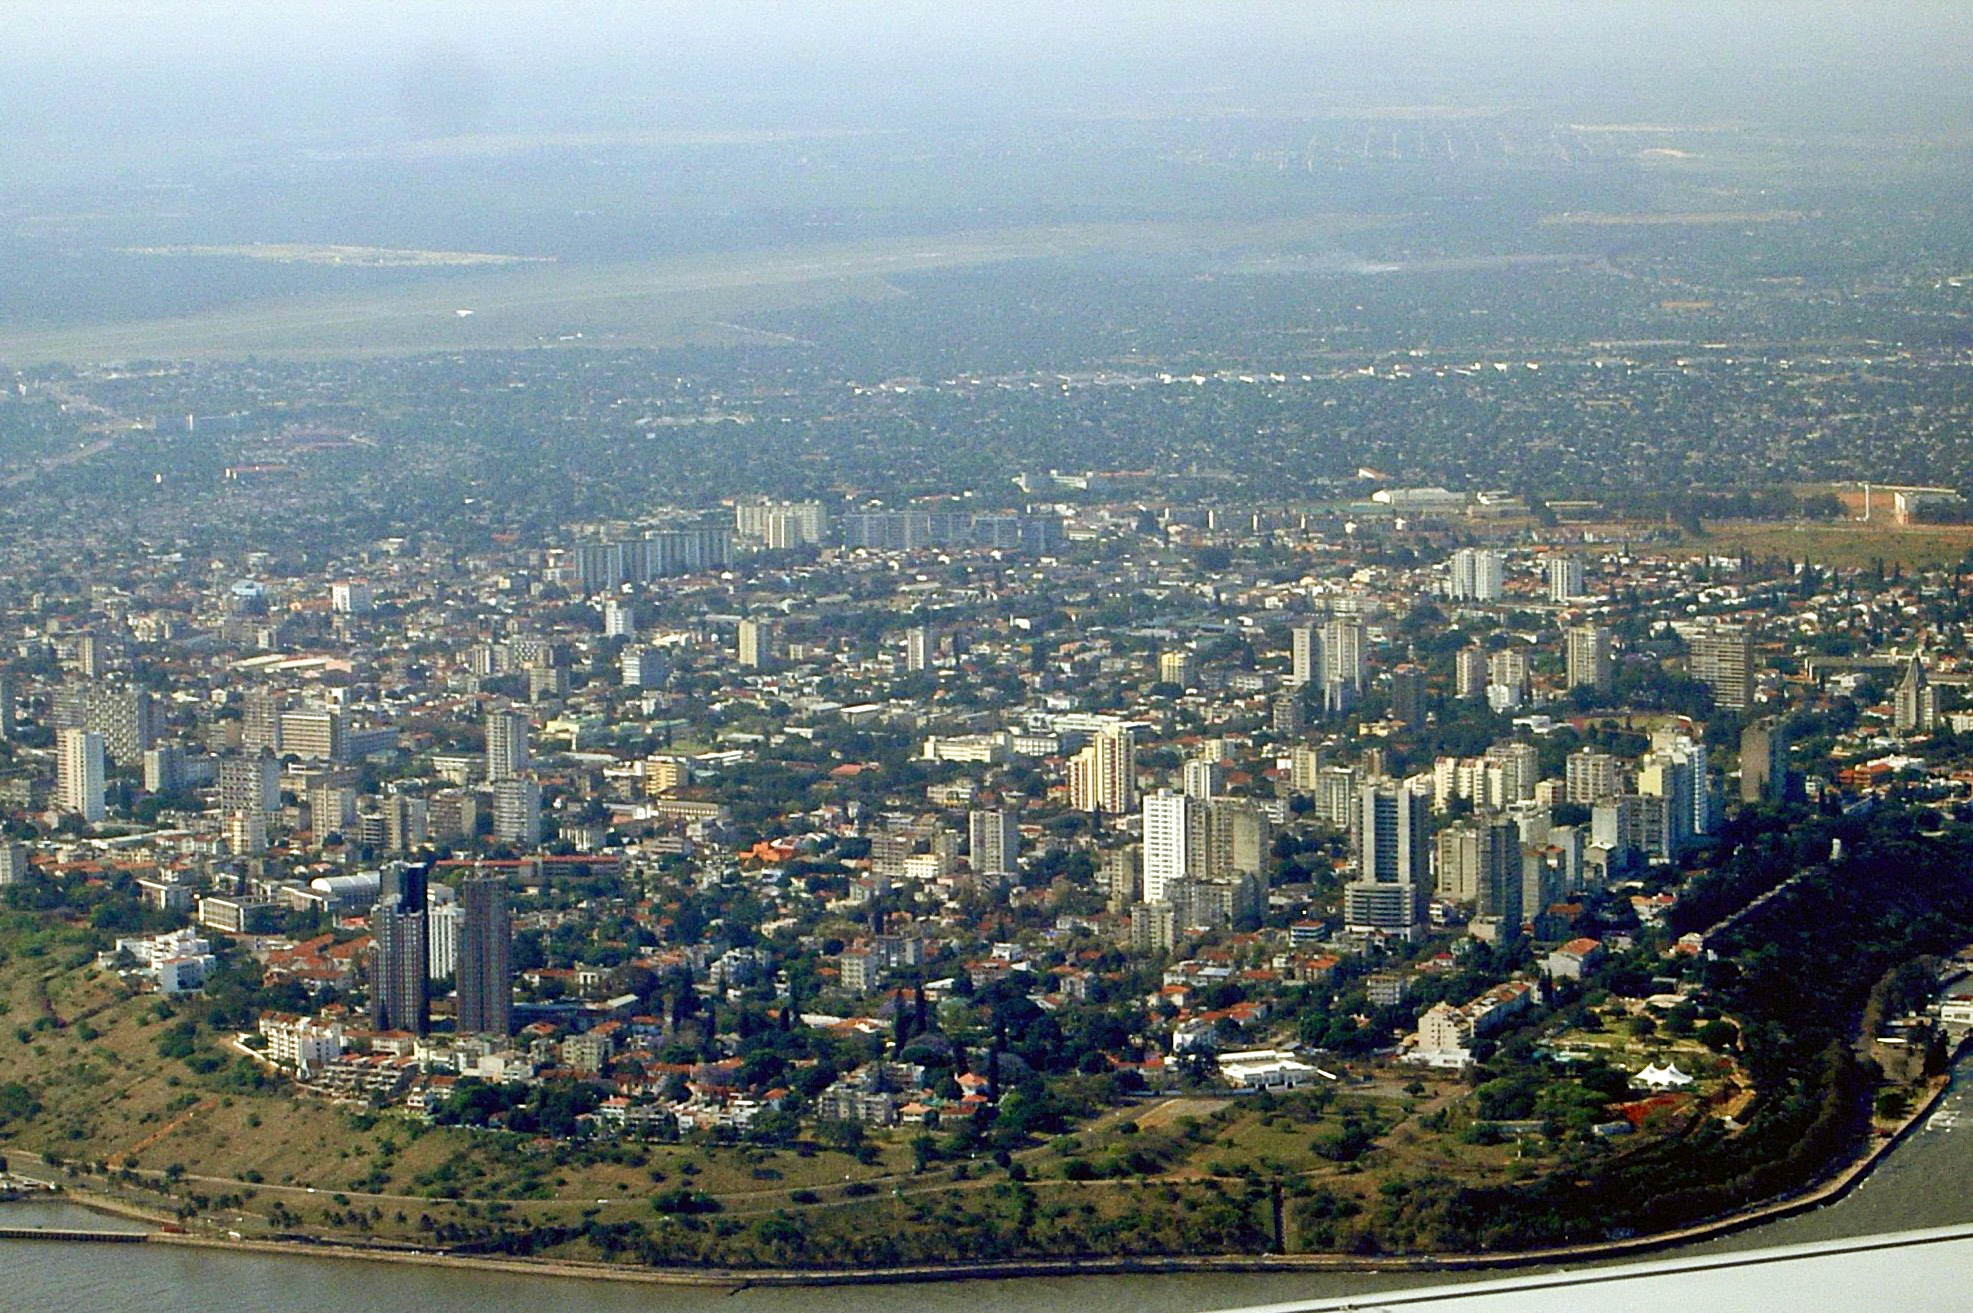 File:Maputo seen from southeast - October 2006.jpg - Wikimedia Commons